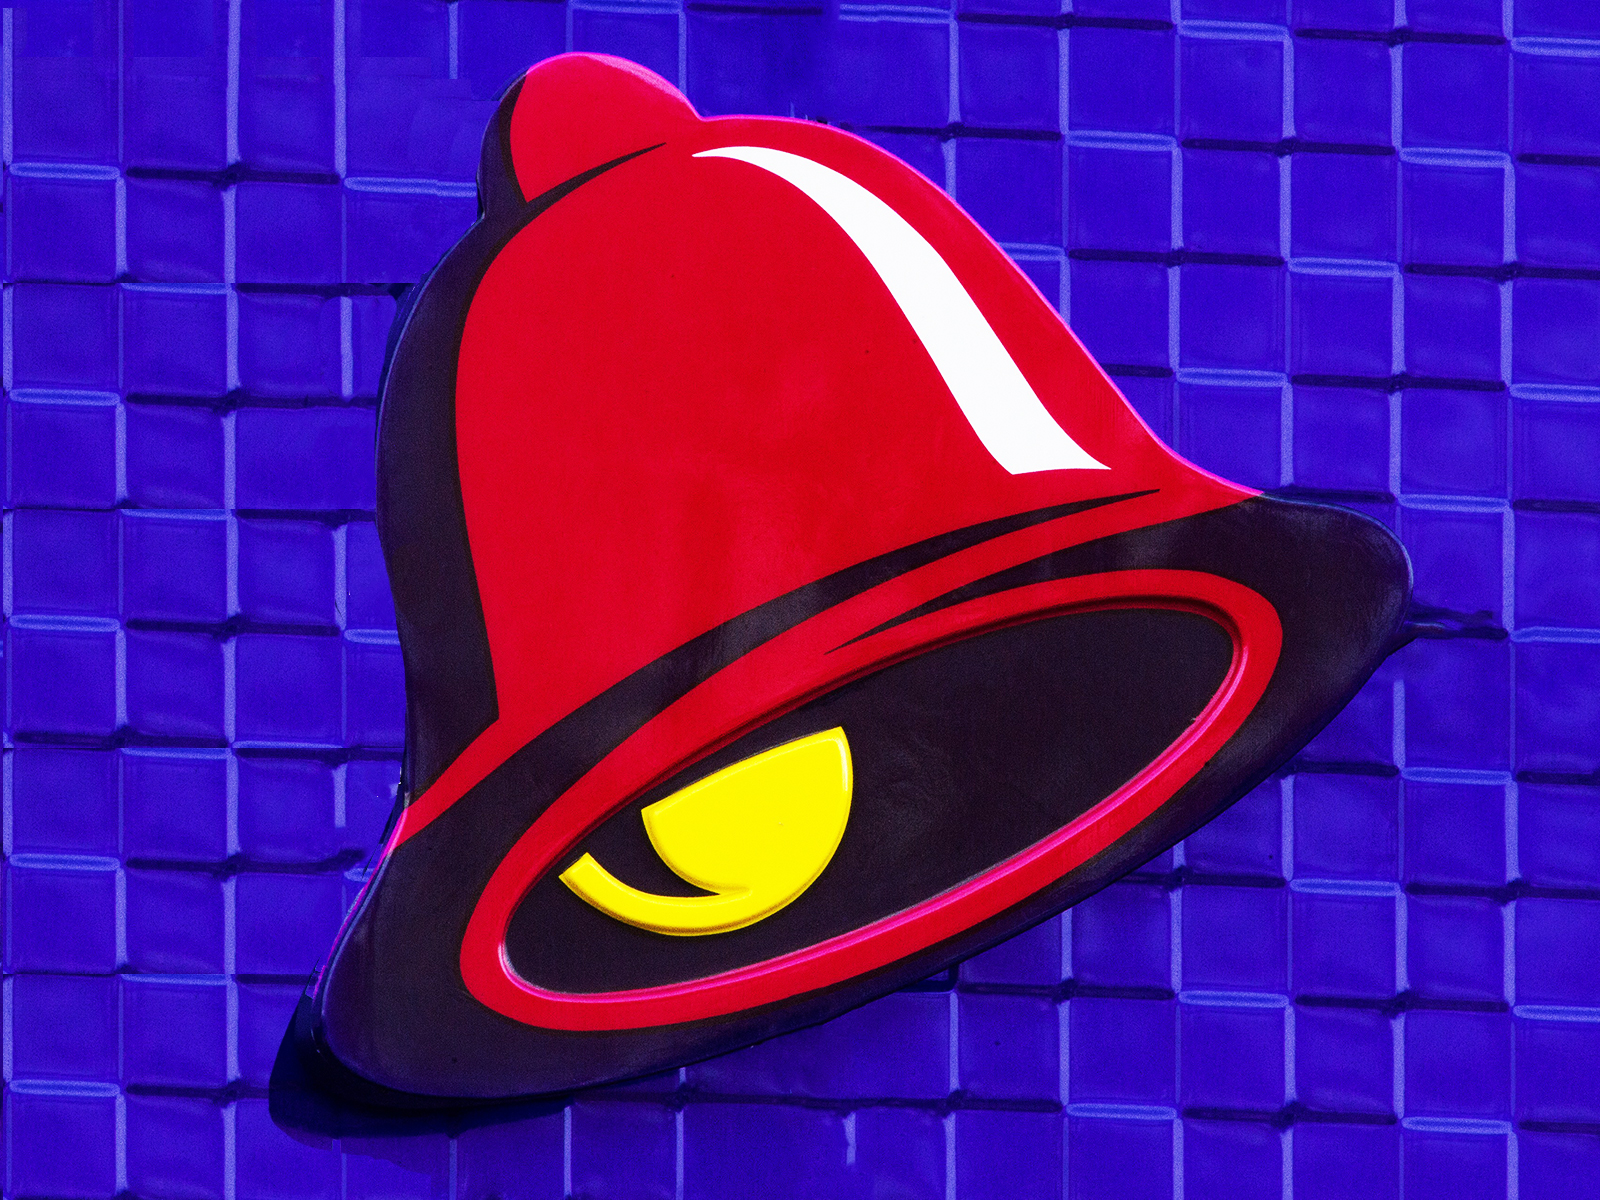 pop rocks burrito at taco bell locations only four